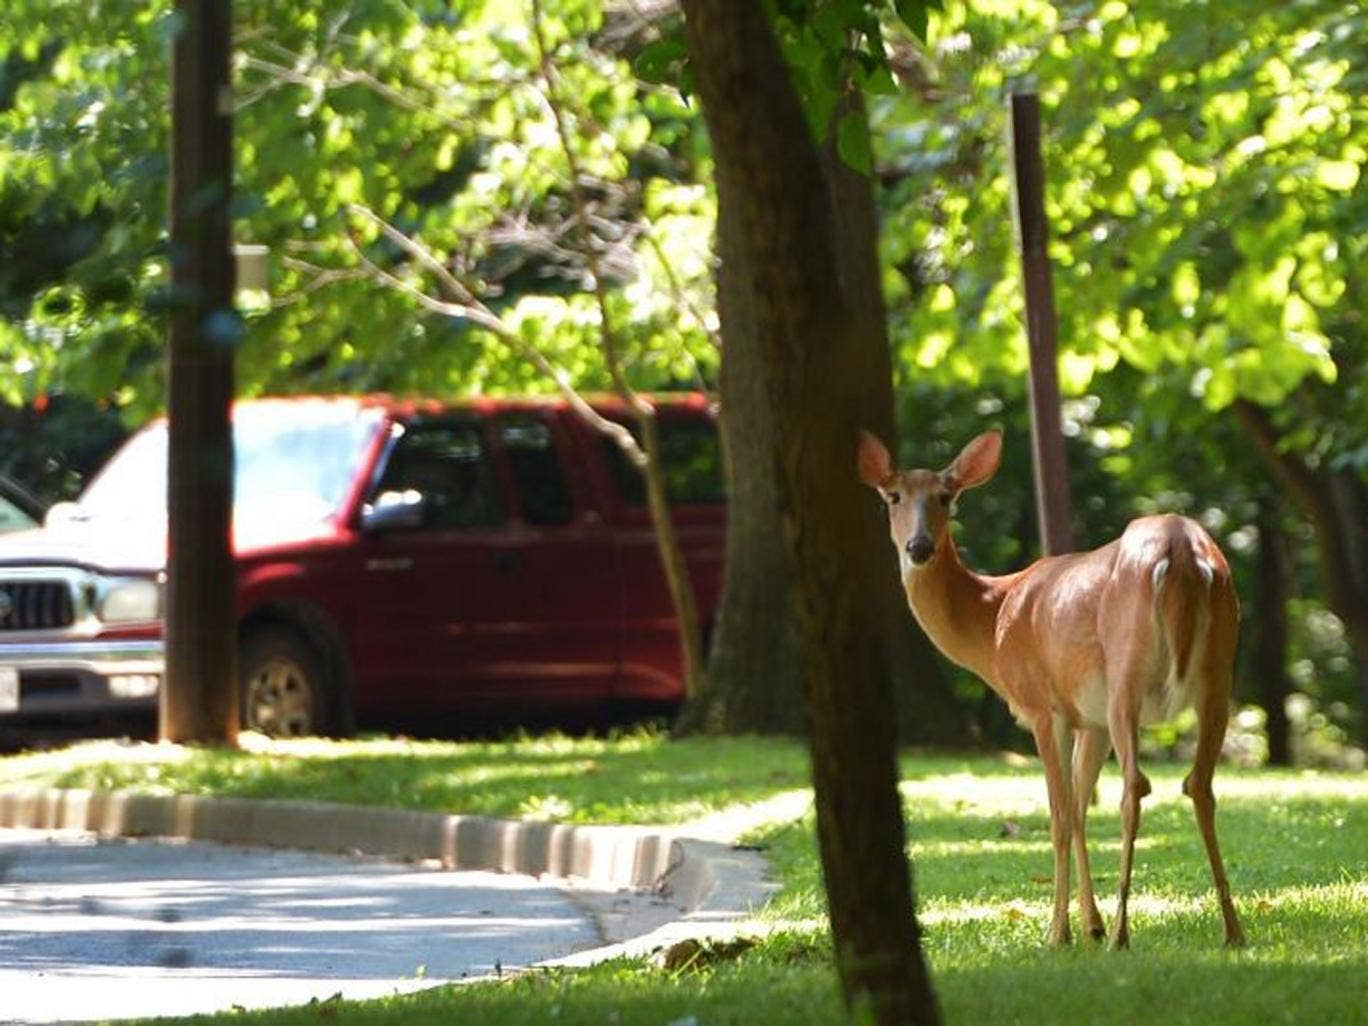 Wild Target: Washington DC's Rock Creek Park has four times as many deer as it can cope with, say authorities